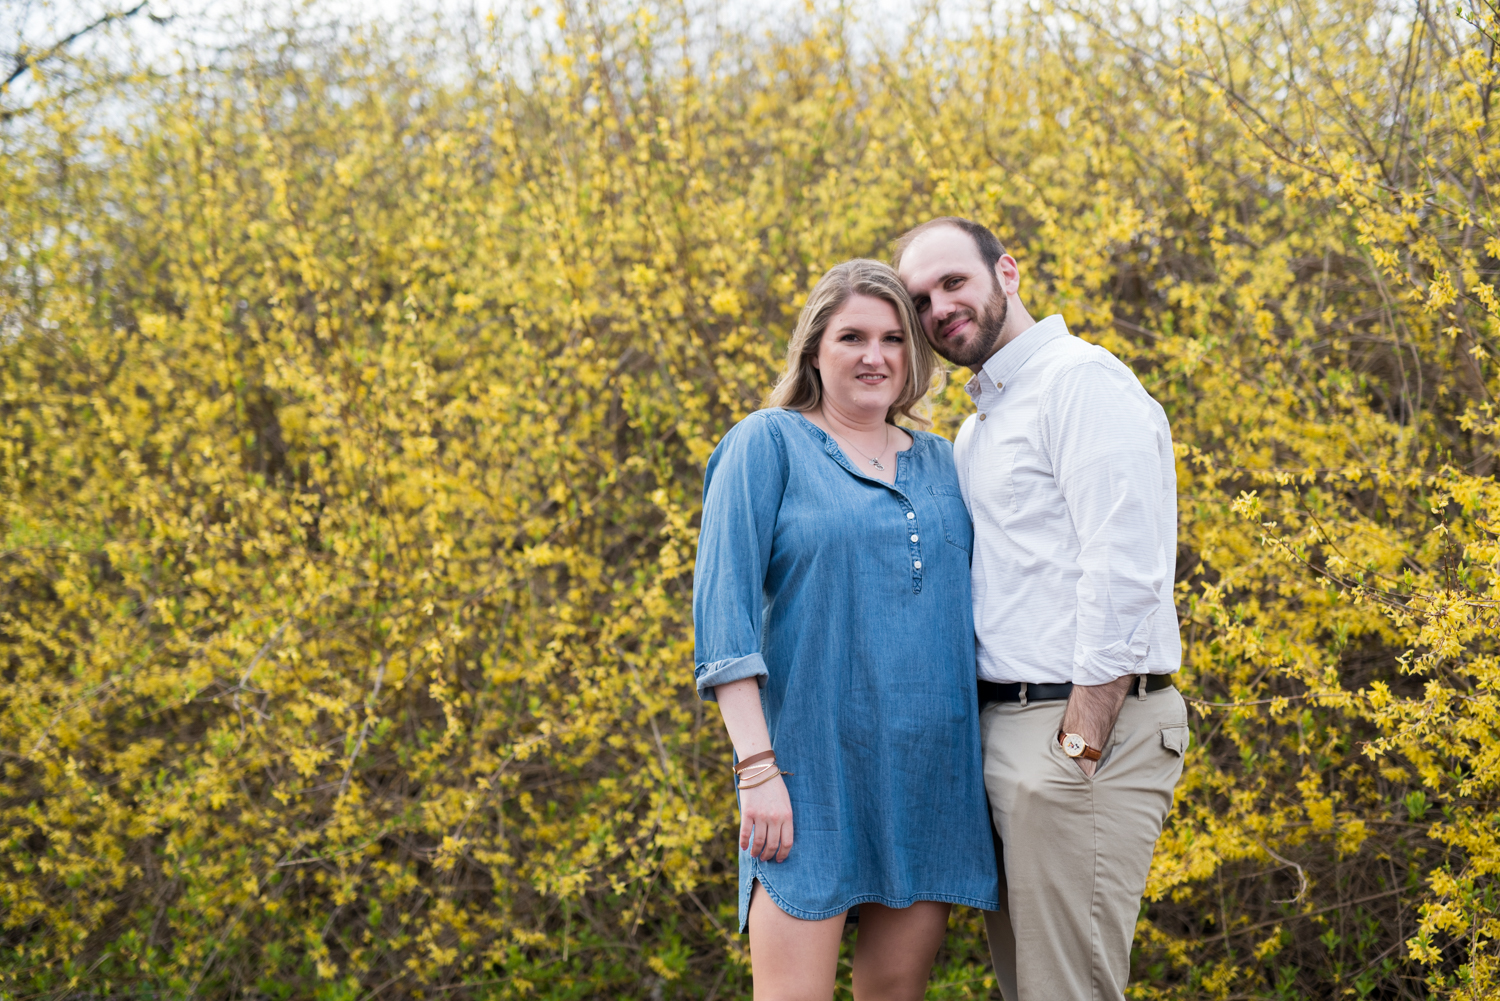 Matt+Melissa- Meadowlands Environmental Center Engagement Session- New Jersey- Olivia Christina Photo-16.JPG